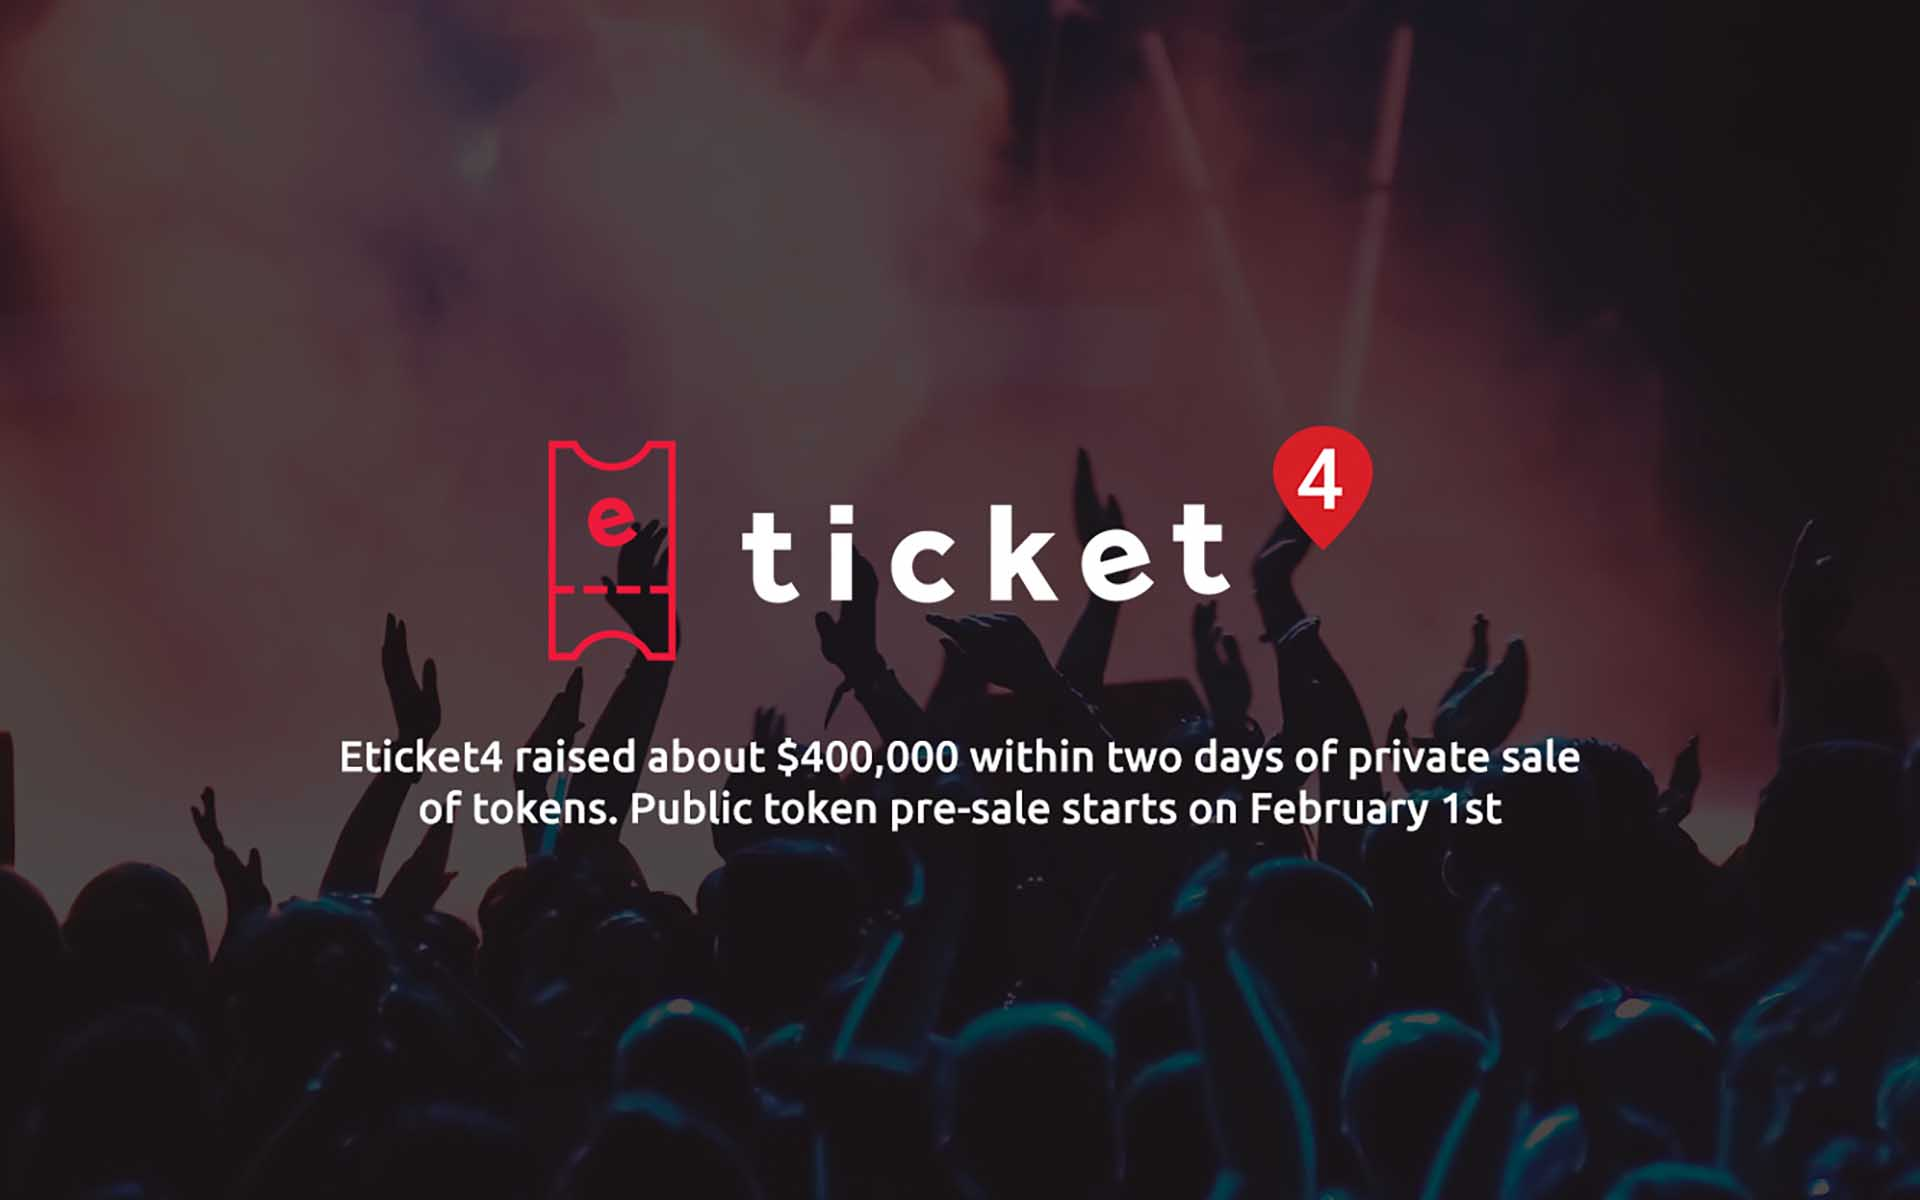 Eticket4 Successfully Completed Pre-ICO, Selling 800,000 ET4 Tokens for Almost $ 700,000